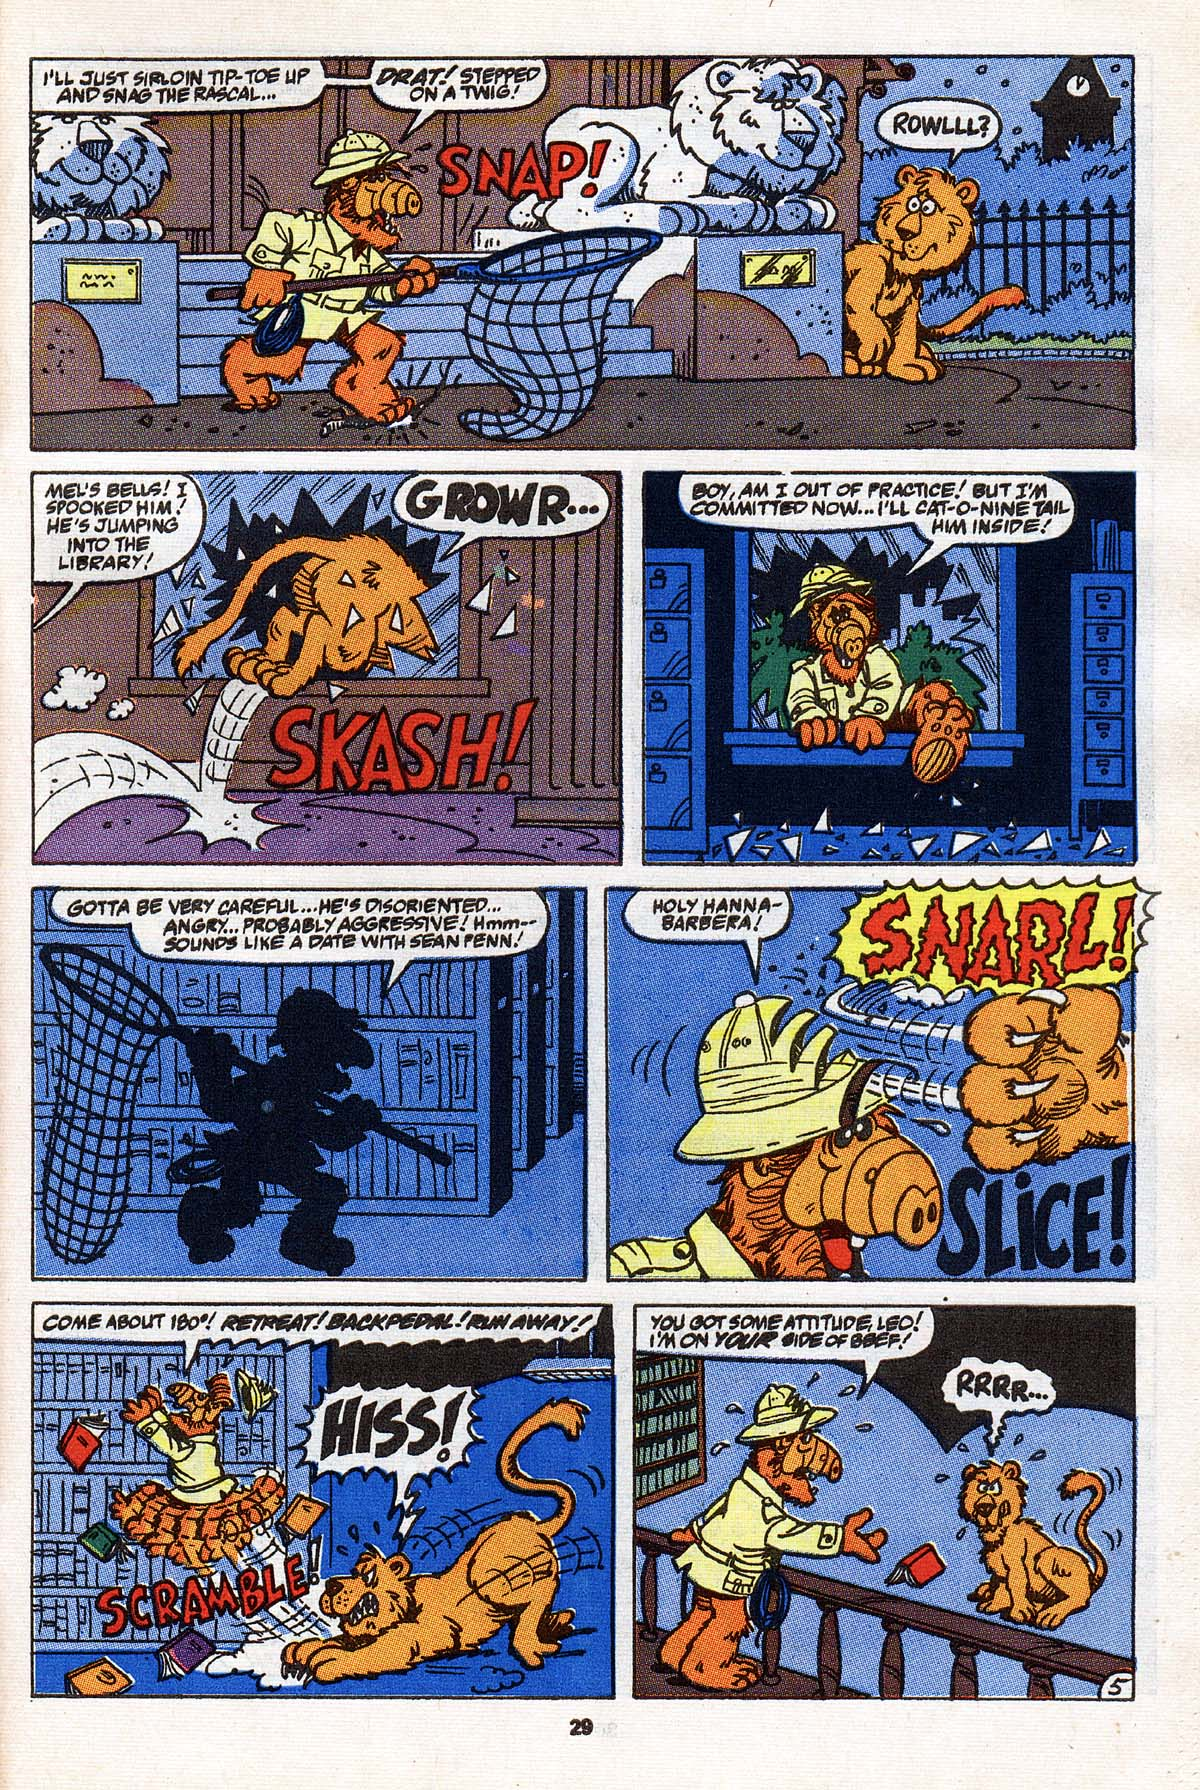 Read online ALF comic -  Issue #31 - 23